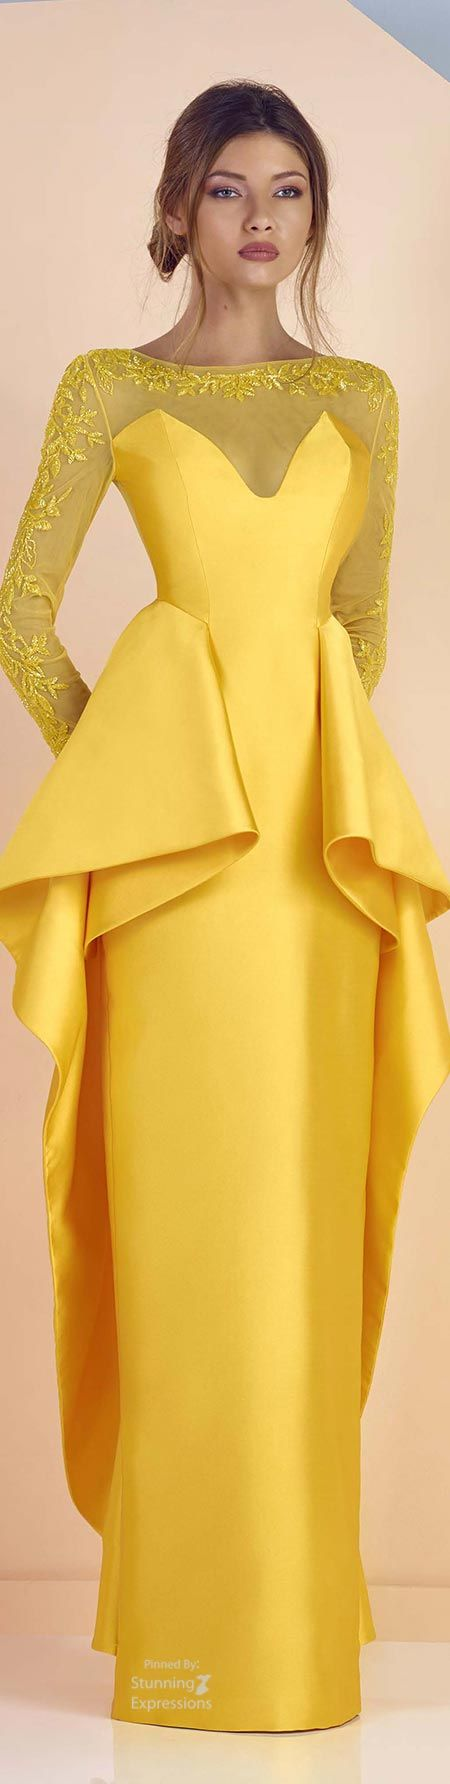 Edward arsouni ss maiz pinterest gowns color yellow and